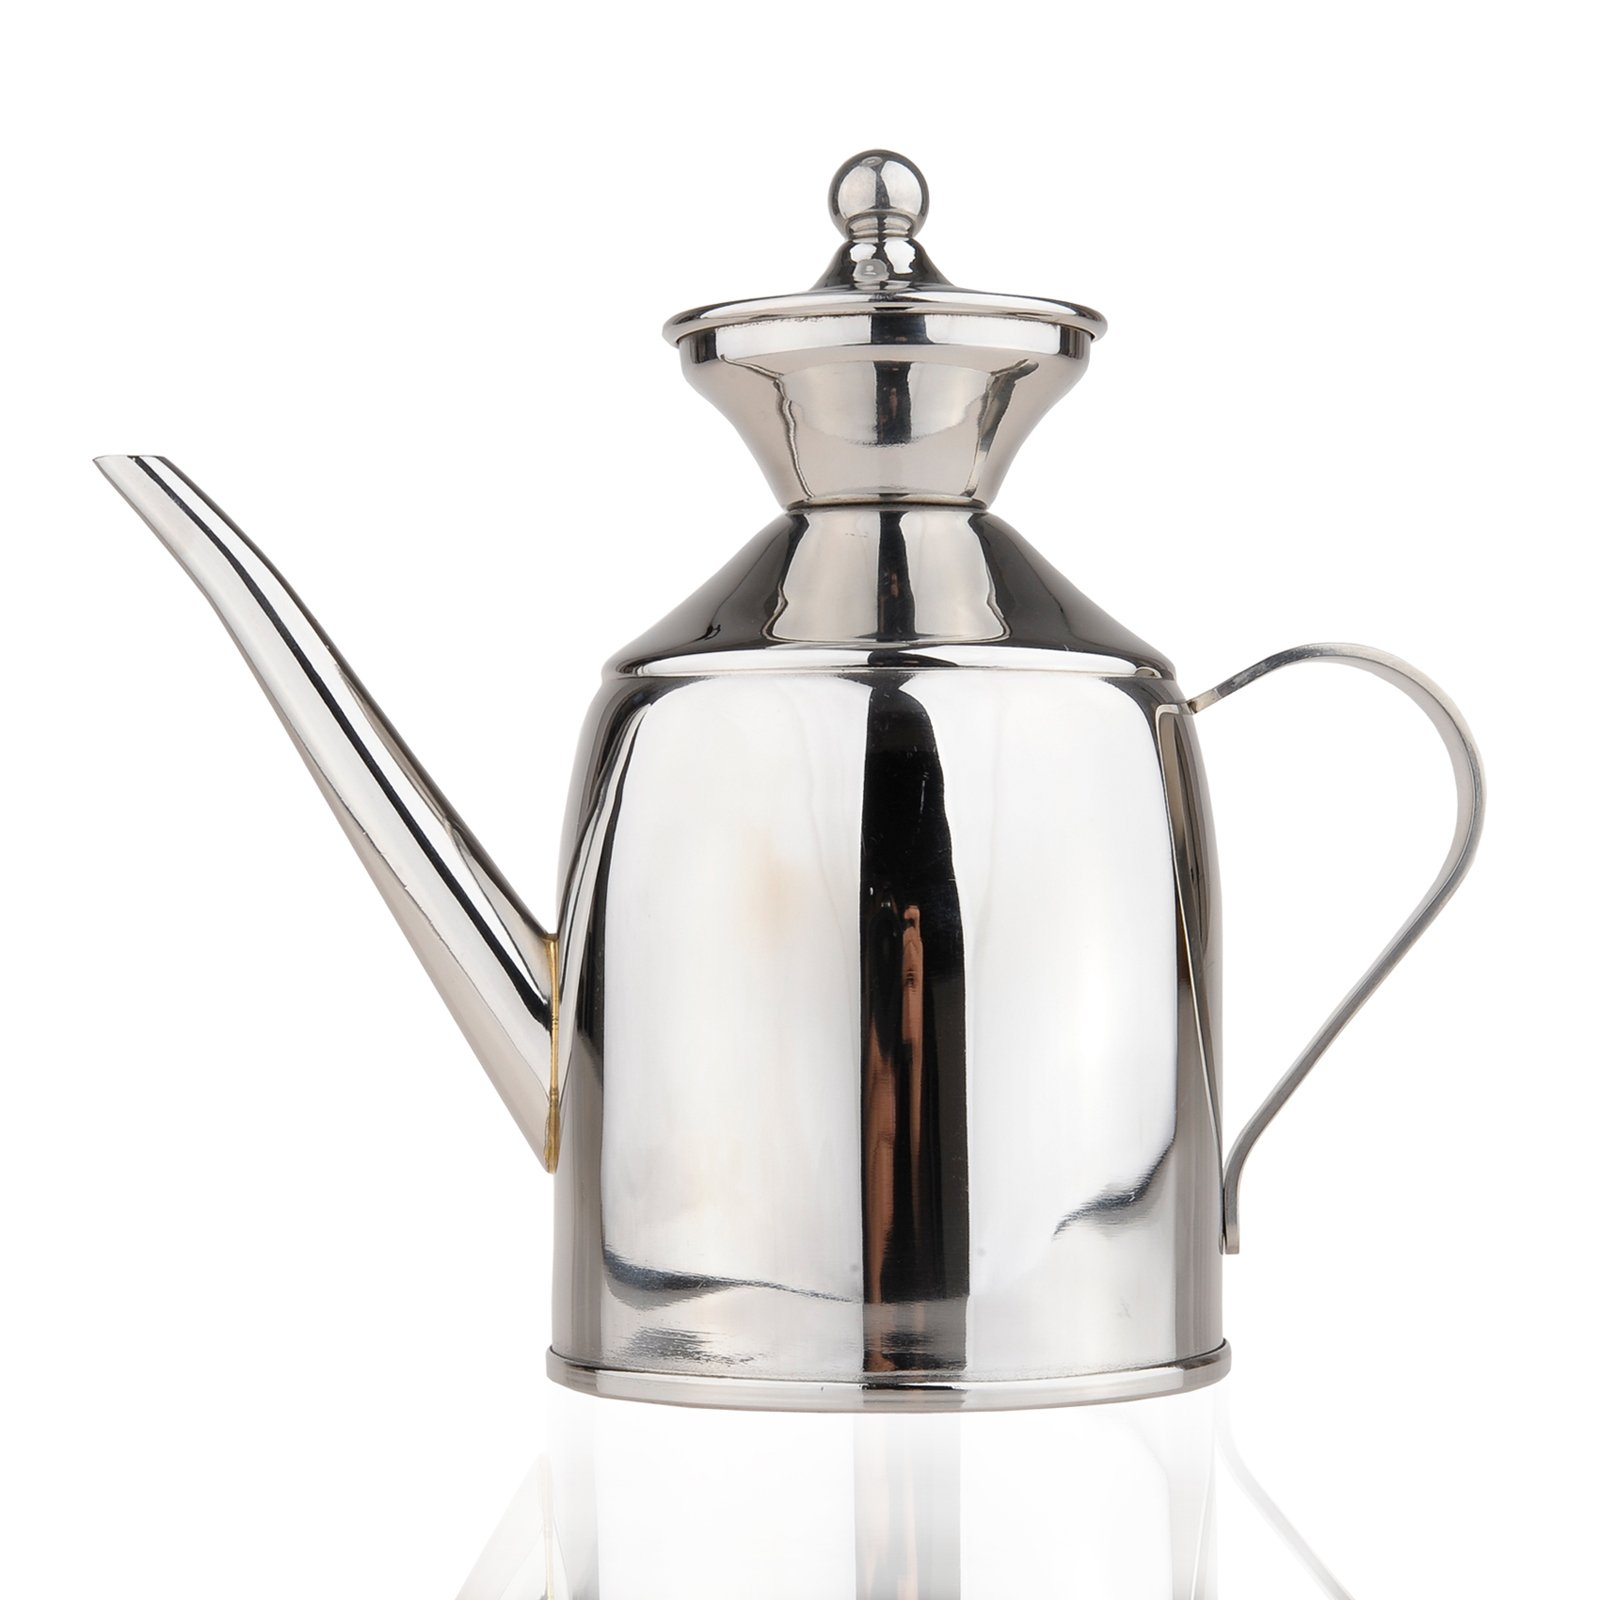 Fladess Stainless Steel Oil Can Vinegar Pot Bottle Container Storage Leak-proof (500ml)